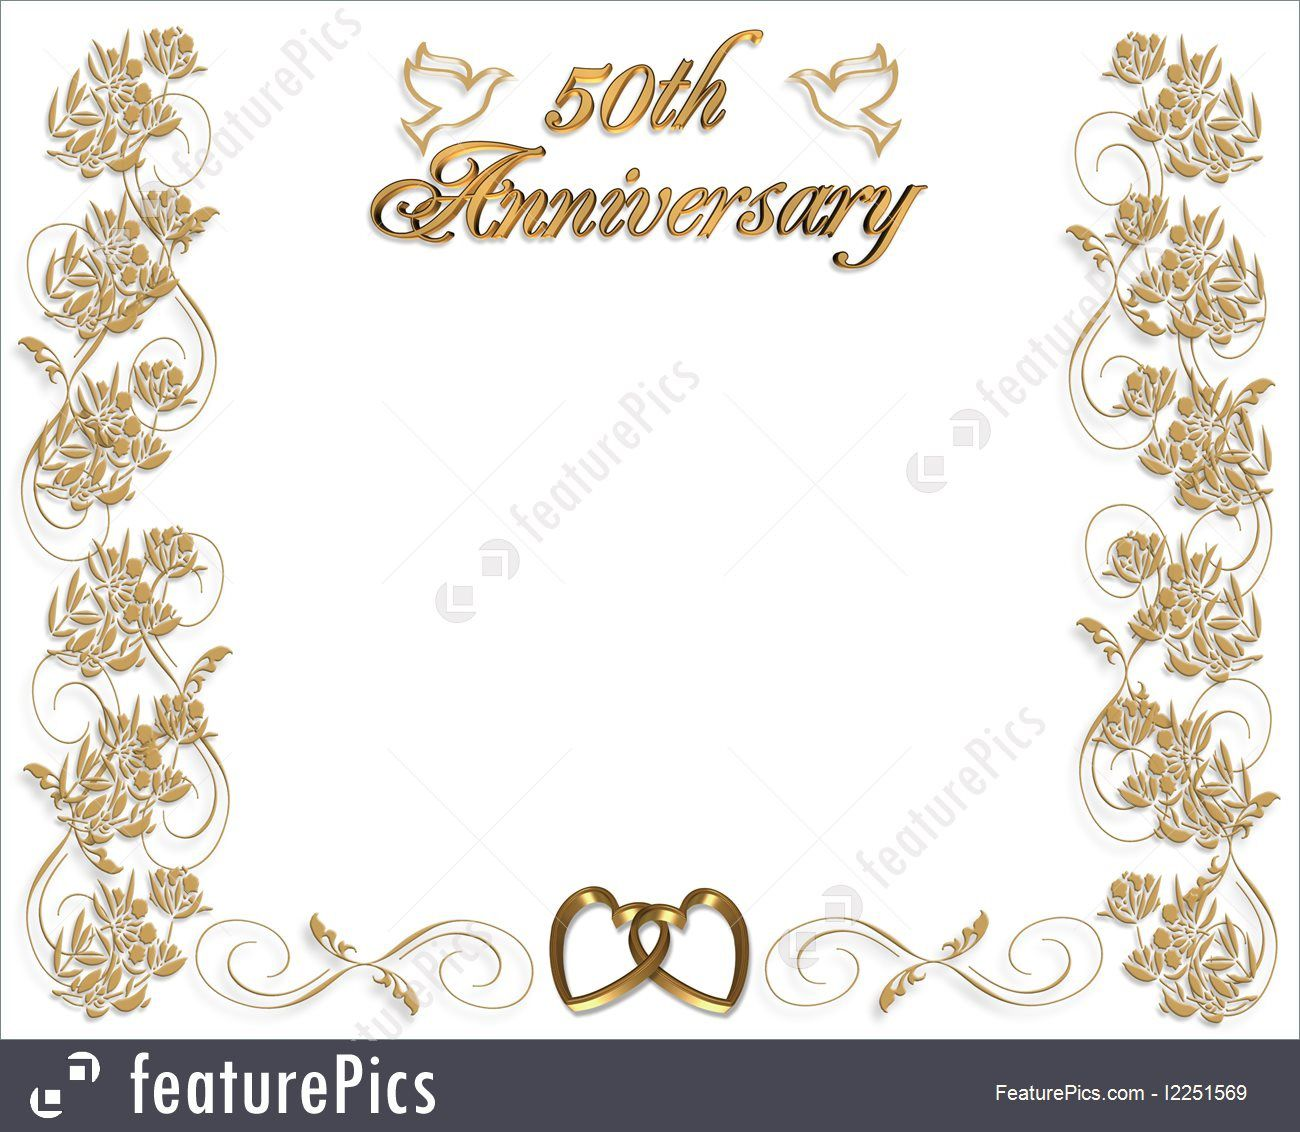 010 Outstanding 50th Anniversary Invitation Card Template High Resolution  Templates FreeFull